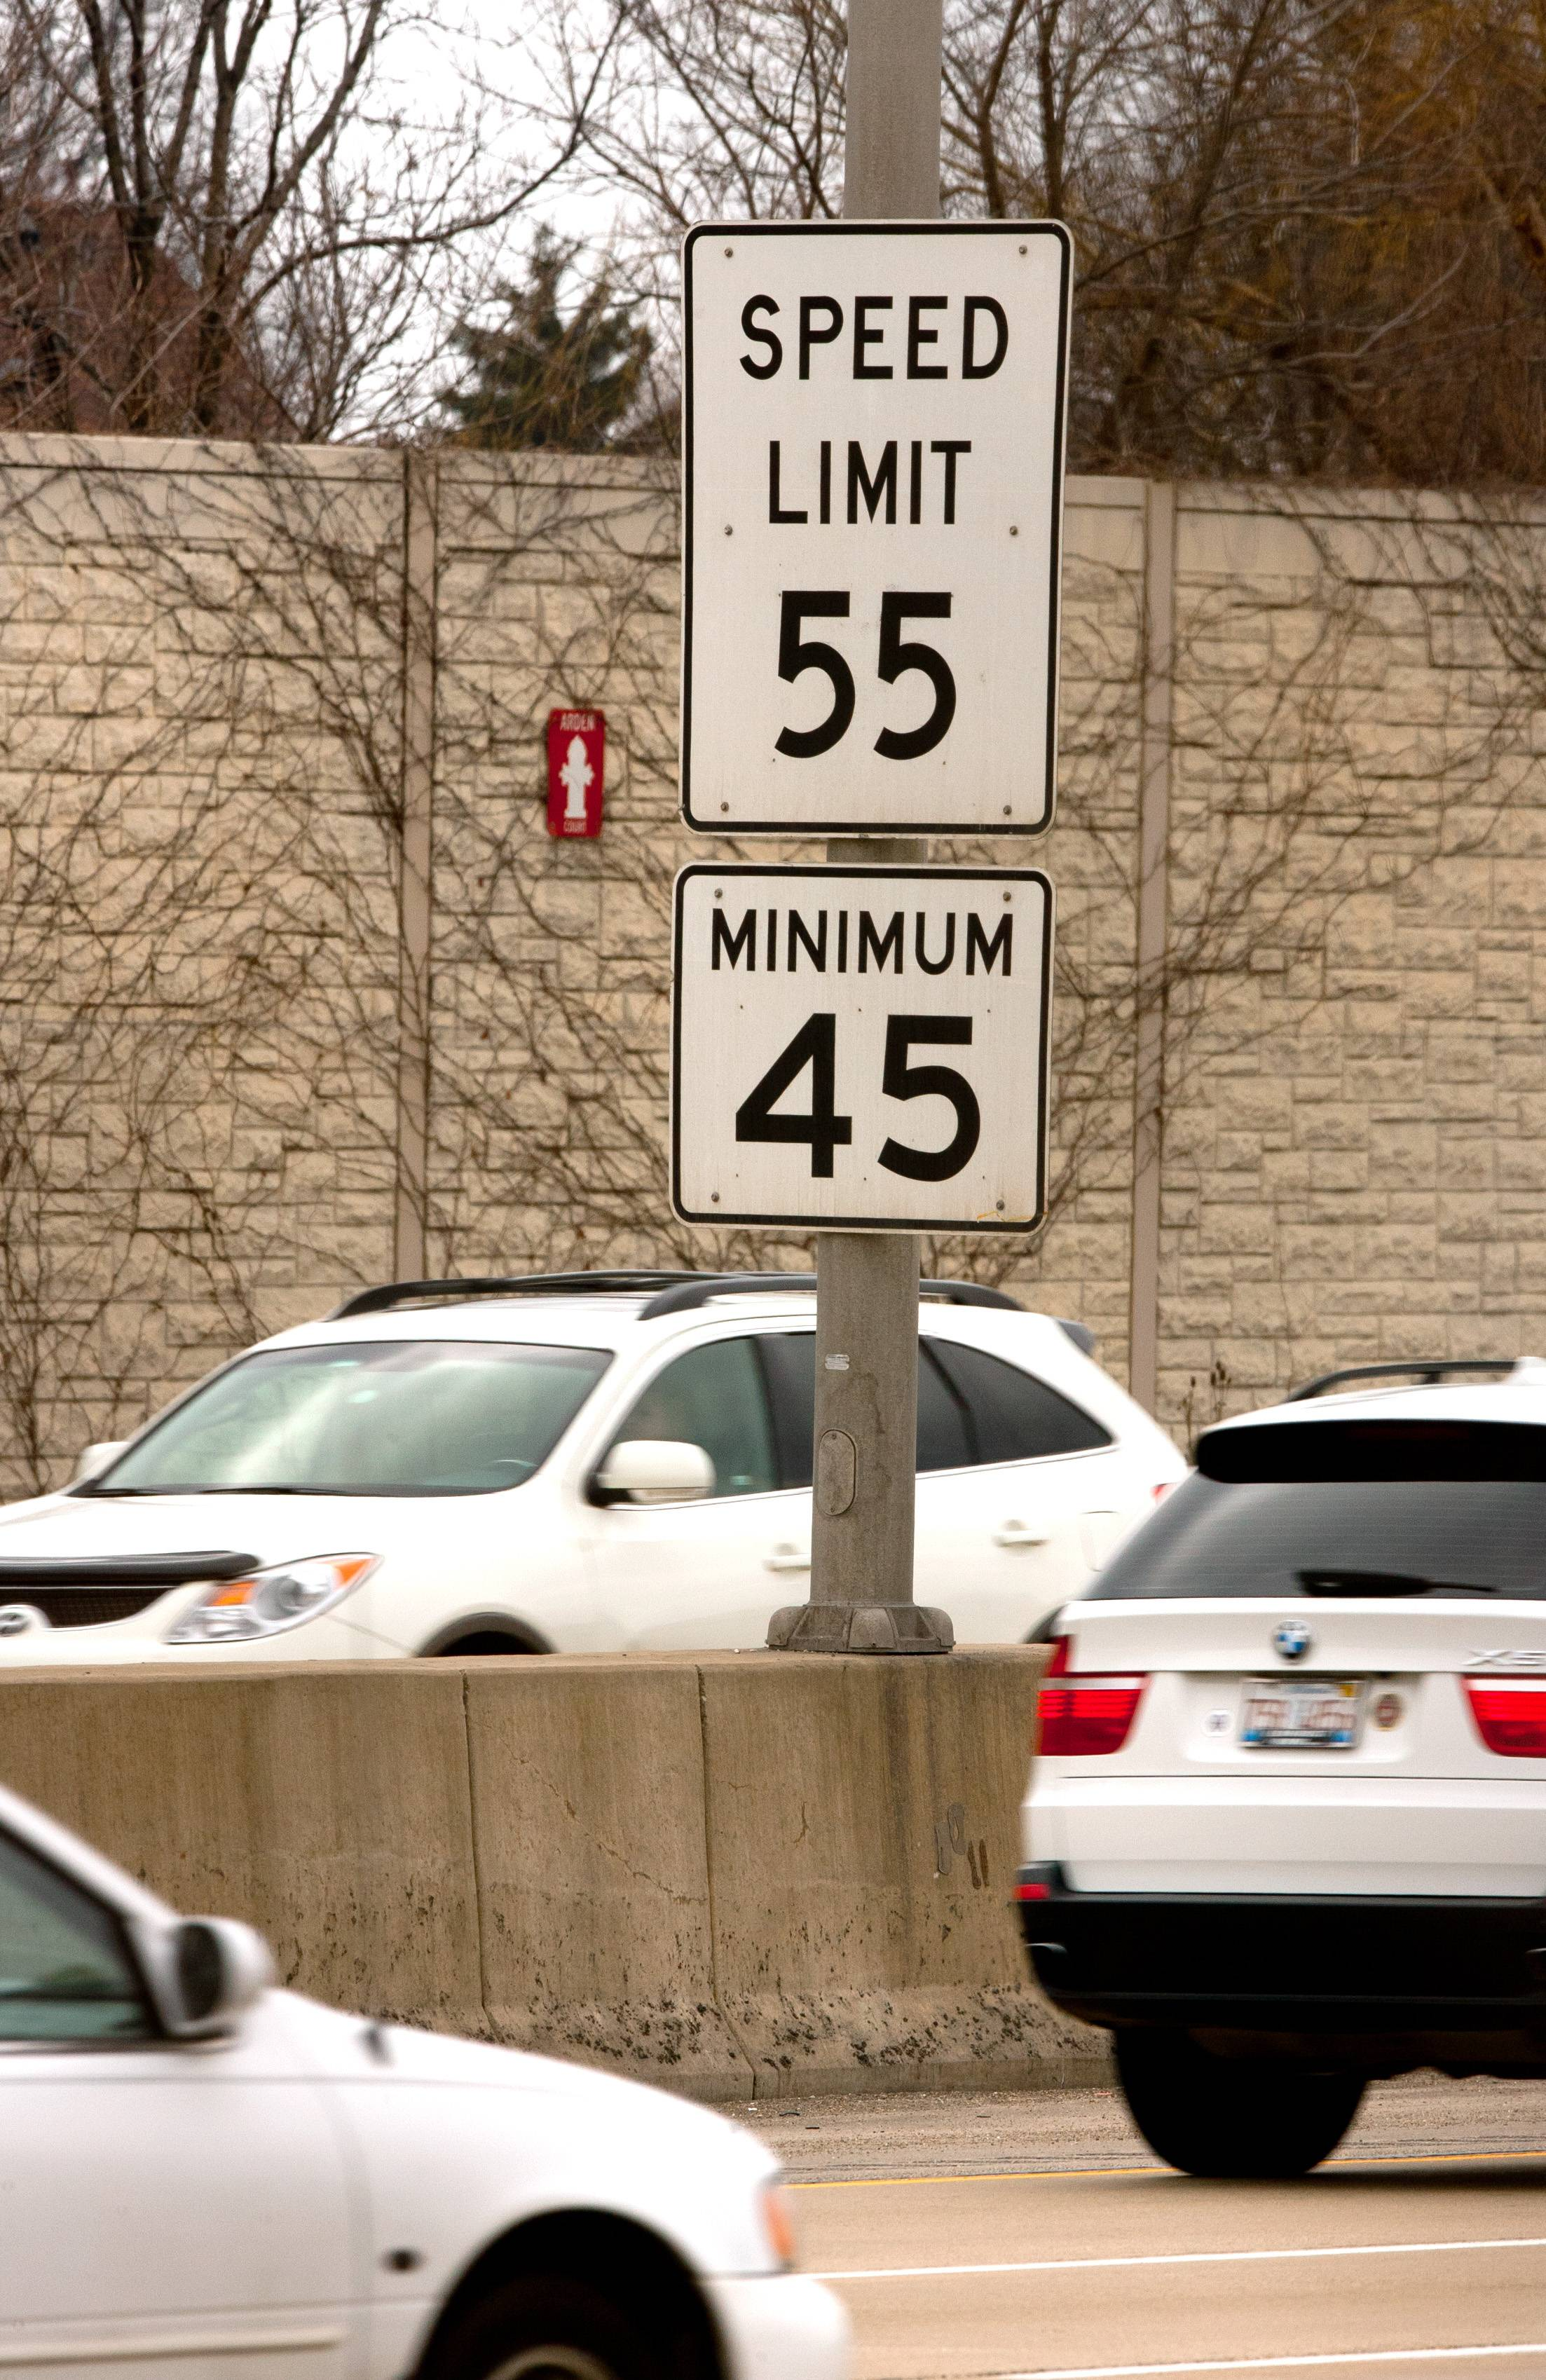 Tollway sets higher speed limits, bucks state law